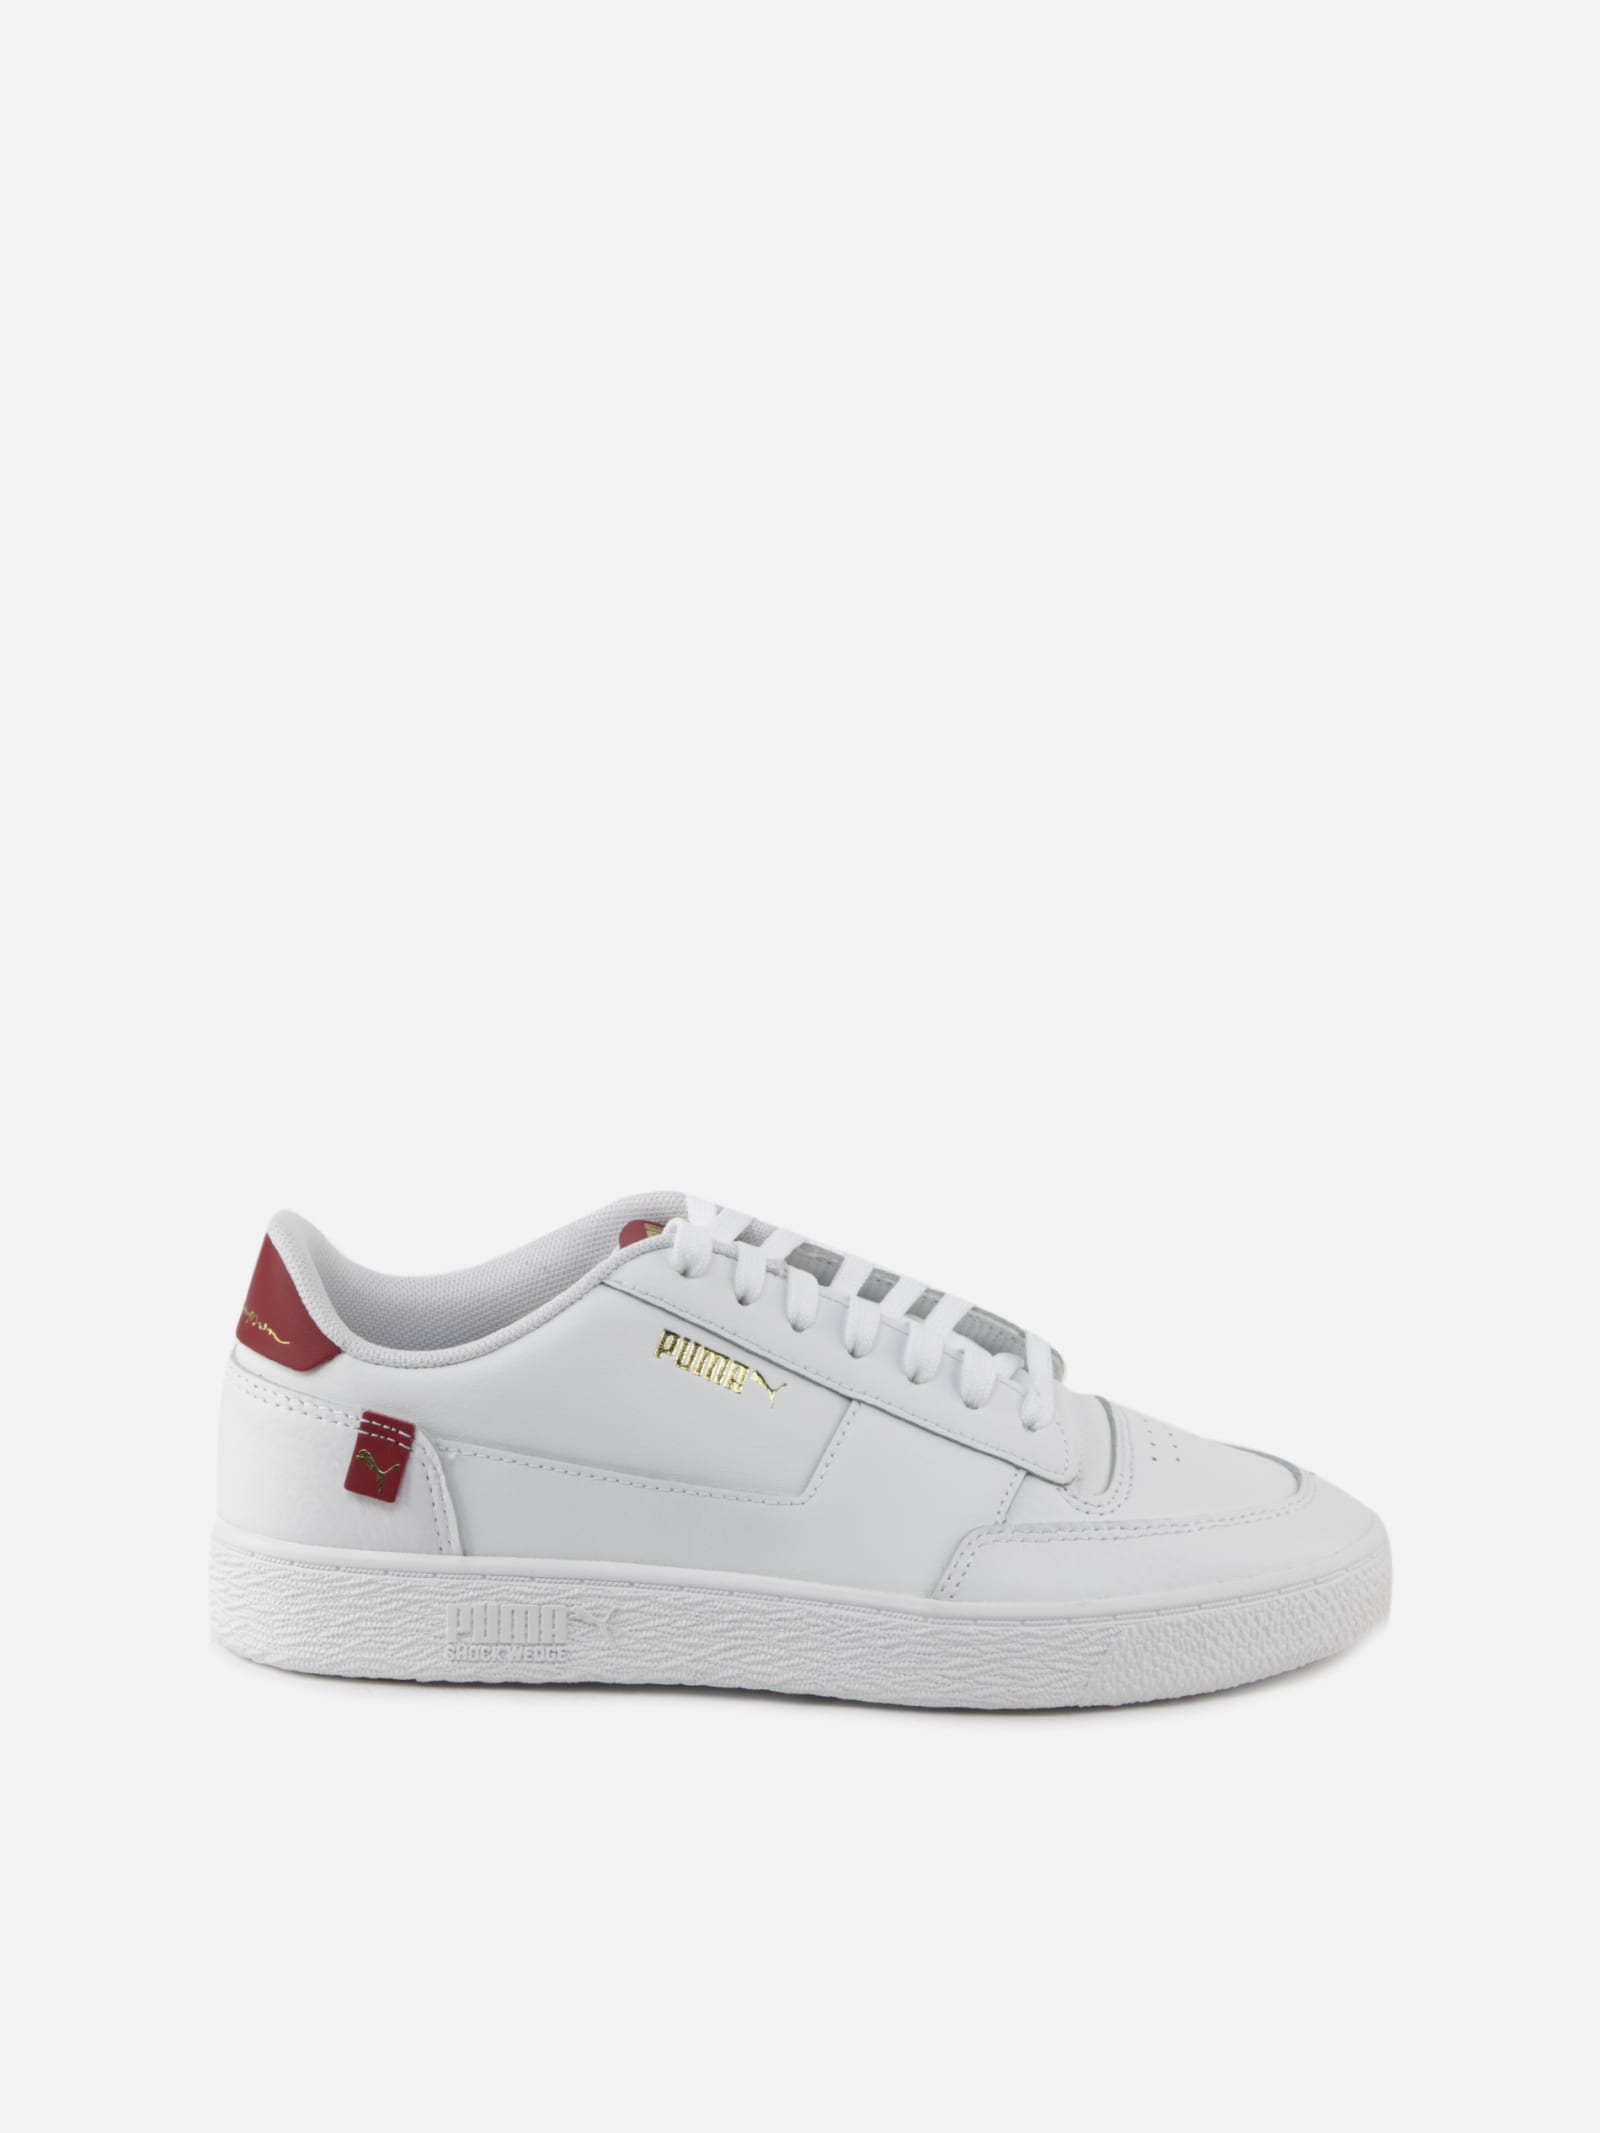 Puma Leathers RALPH SAMPSON MC CLEAN LEATHER SNEAKERS